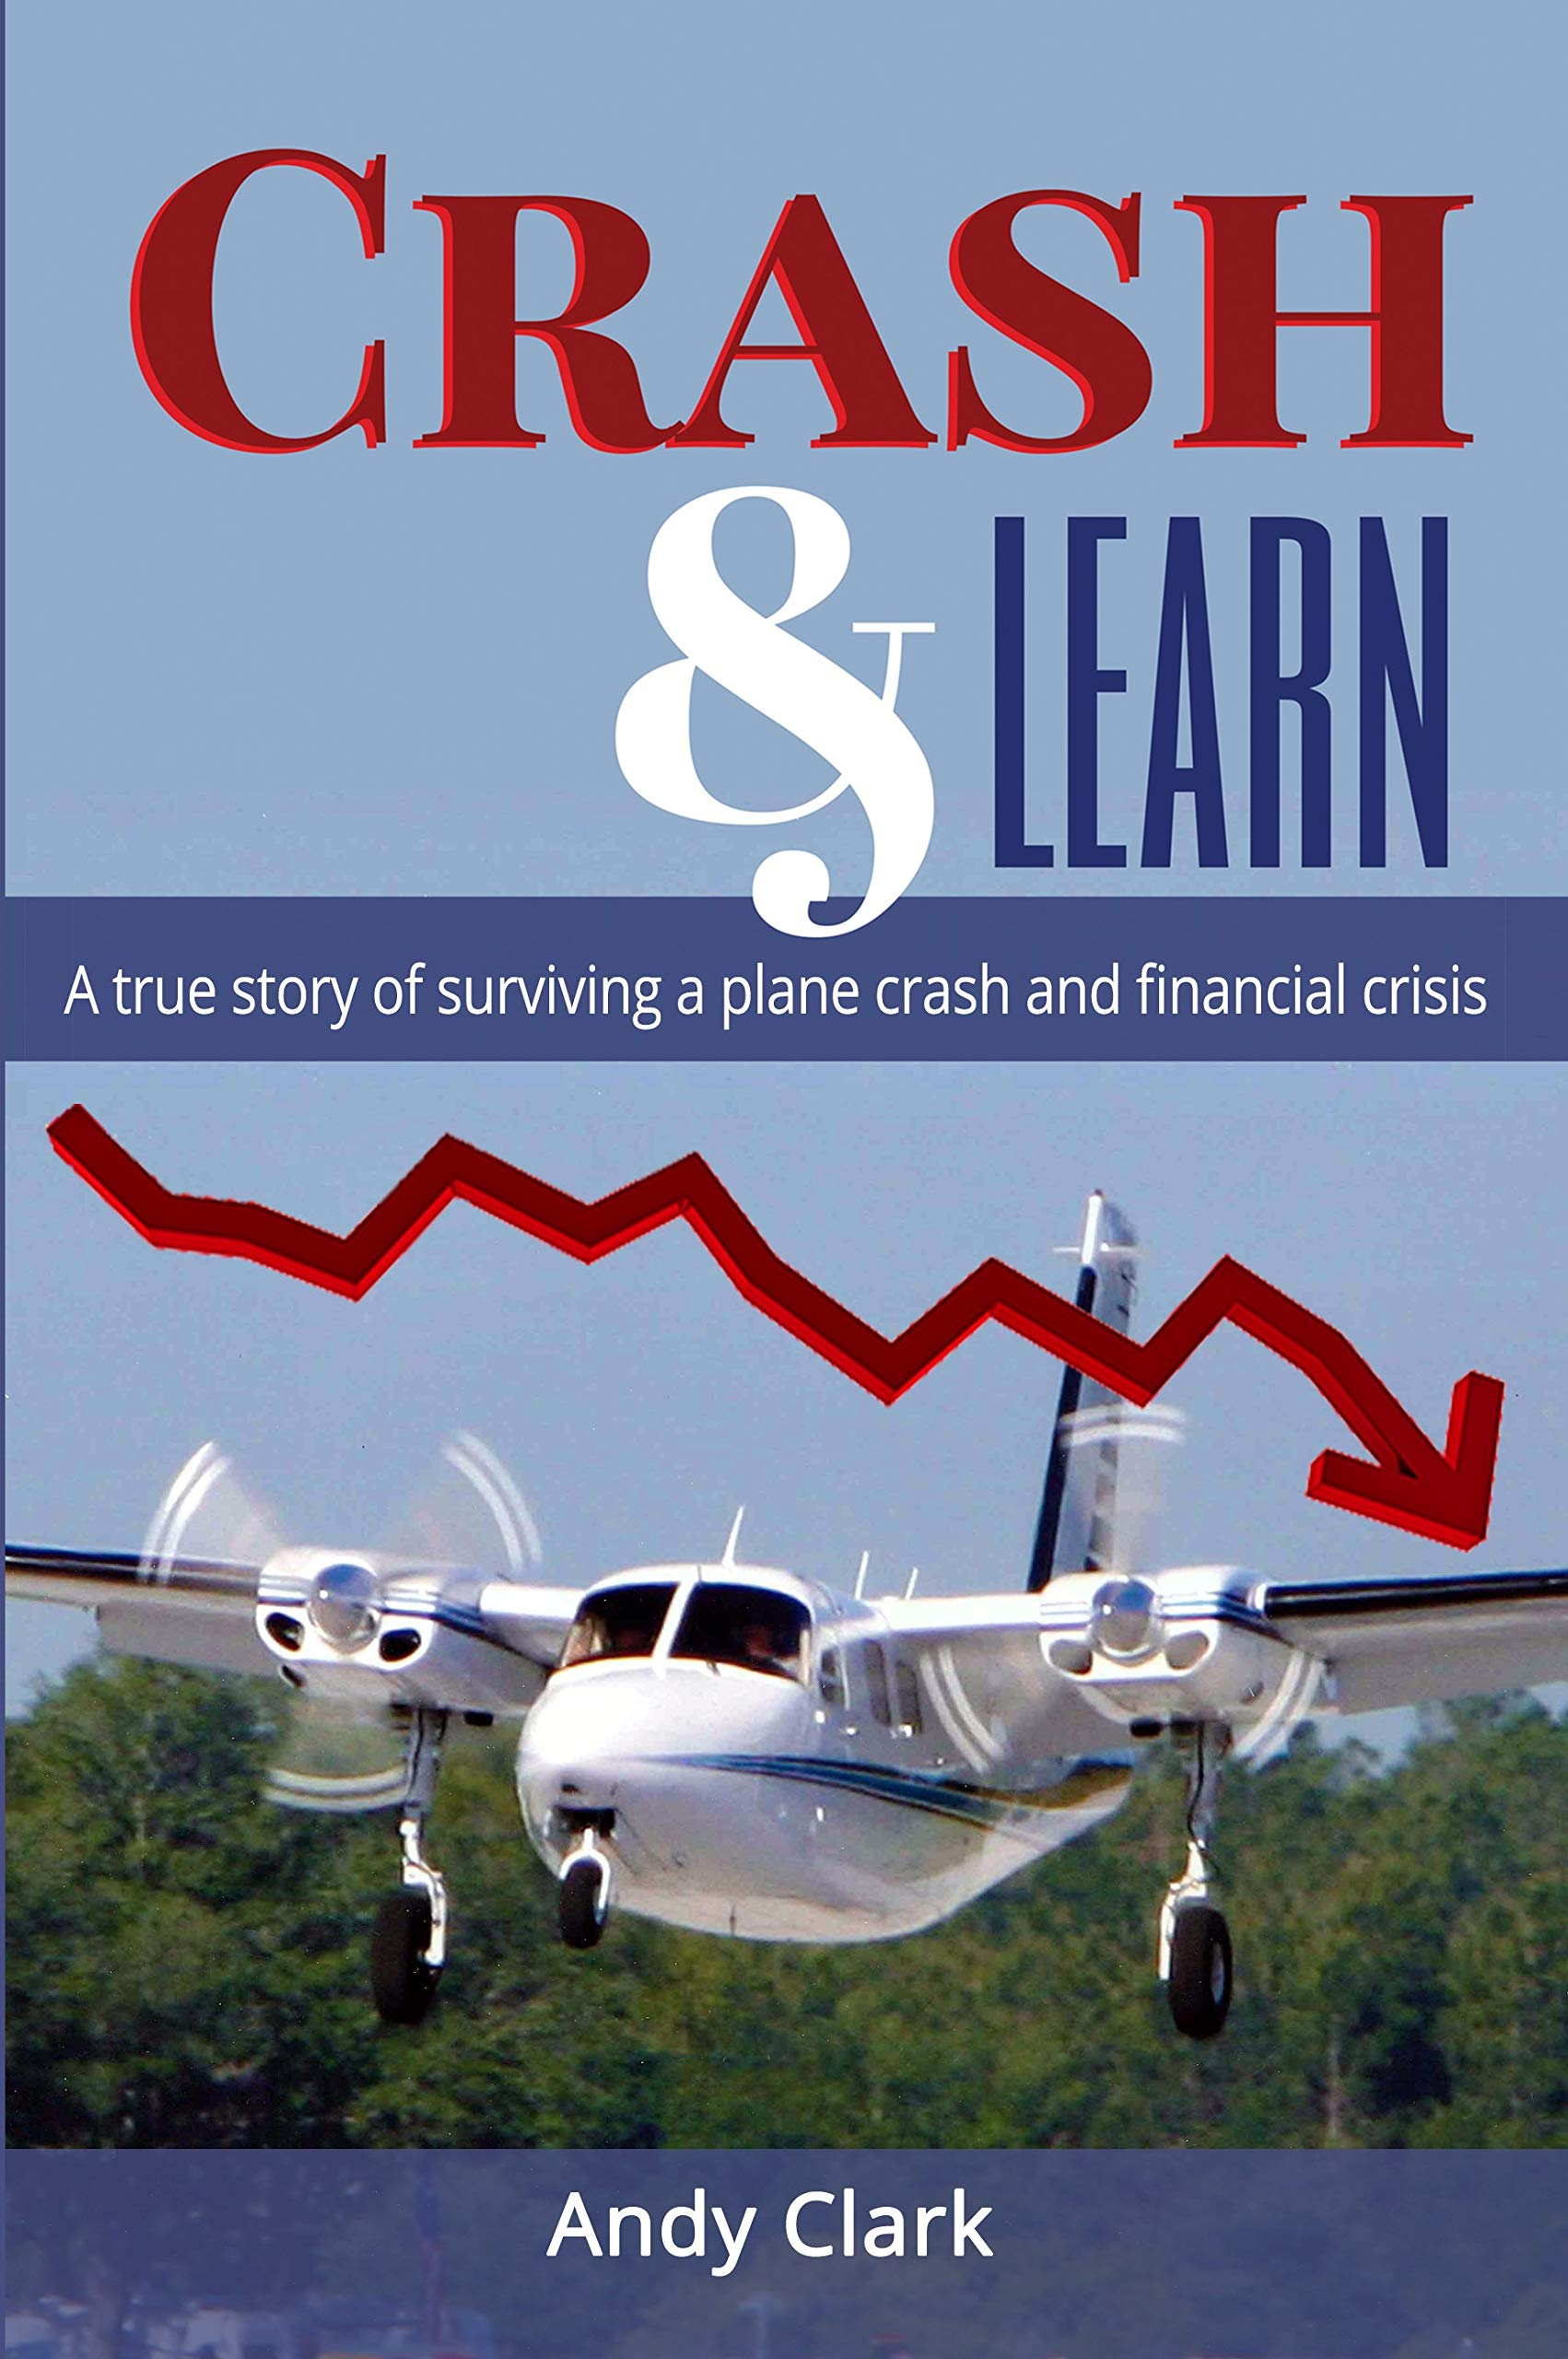 Crash & Learn: A True Story of Surviving a Plane Crash and Financial Crisis